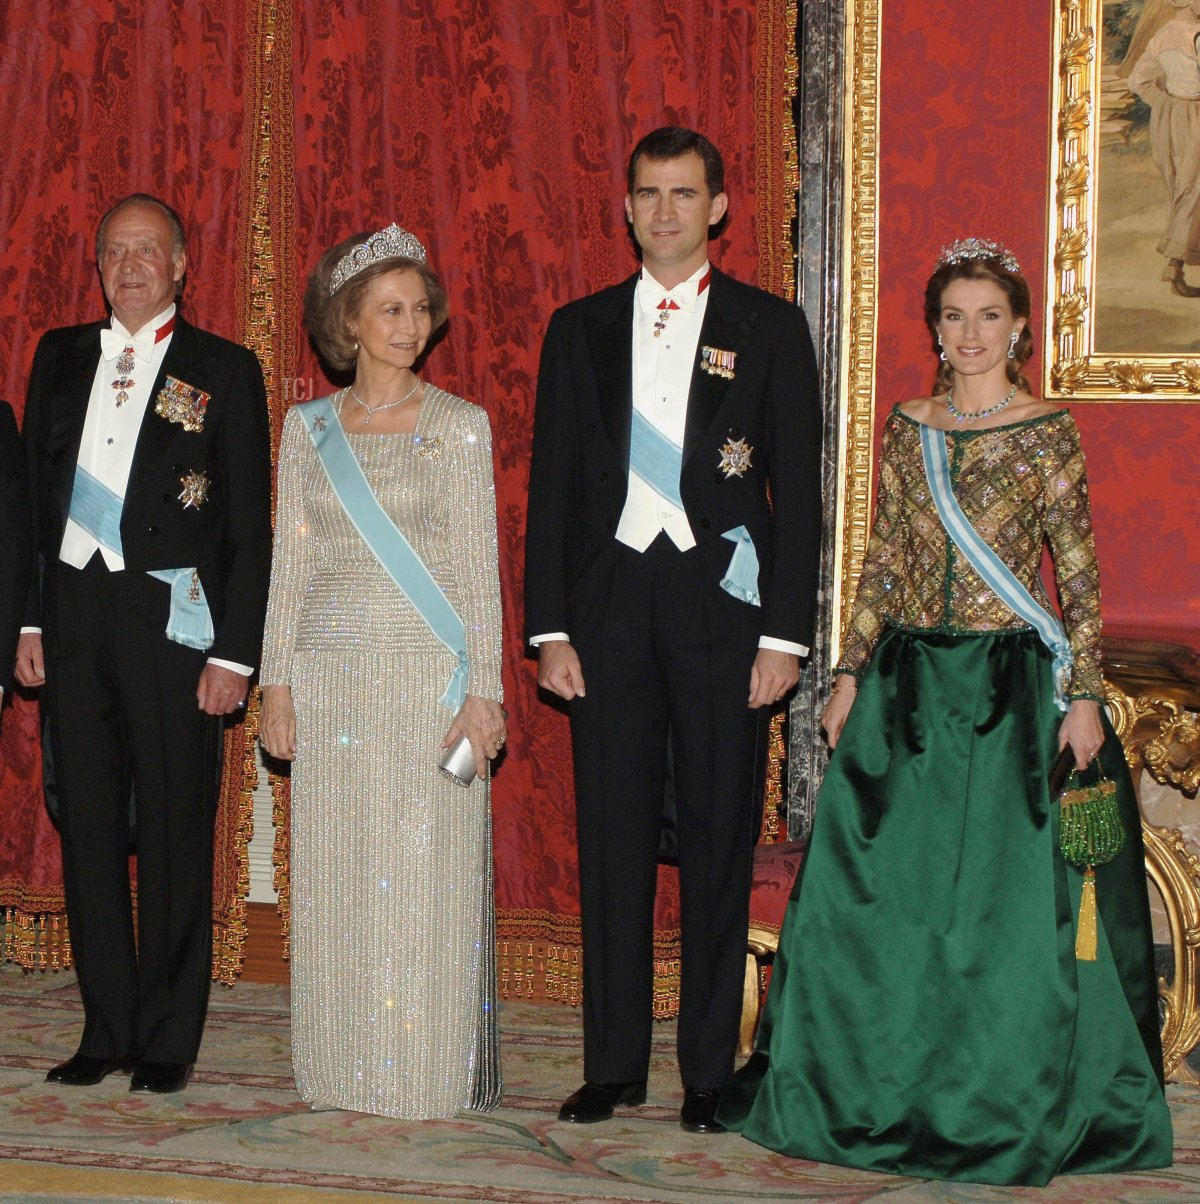 King Juan Carlos, Queen Sofia, Crown Prince Felipe and Princess Letizia of Spain attend an official dinner in honour of Russian President Vladimir Putin at the Royal Palace, on February 8, 2006 in Madrid, Spain